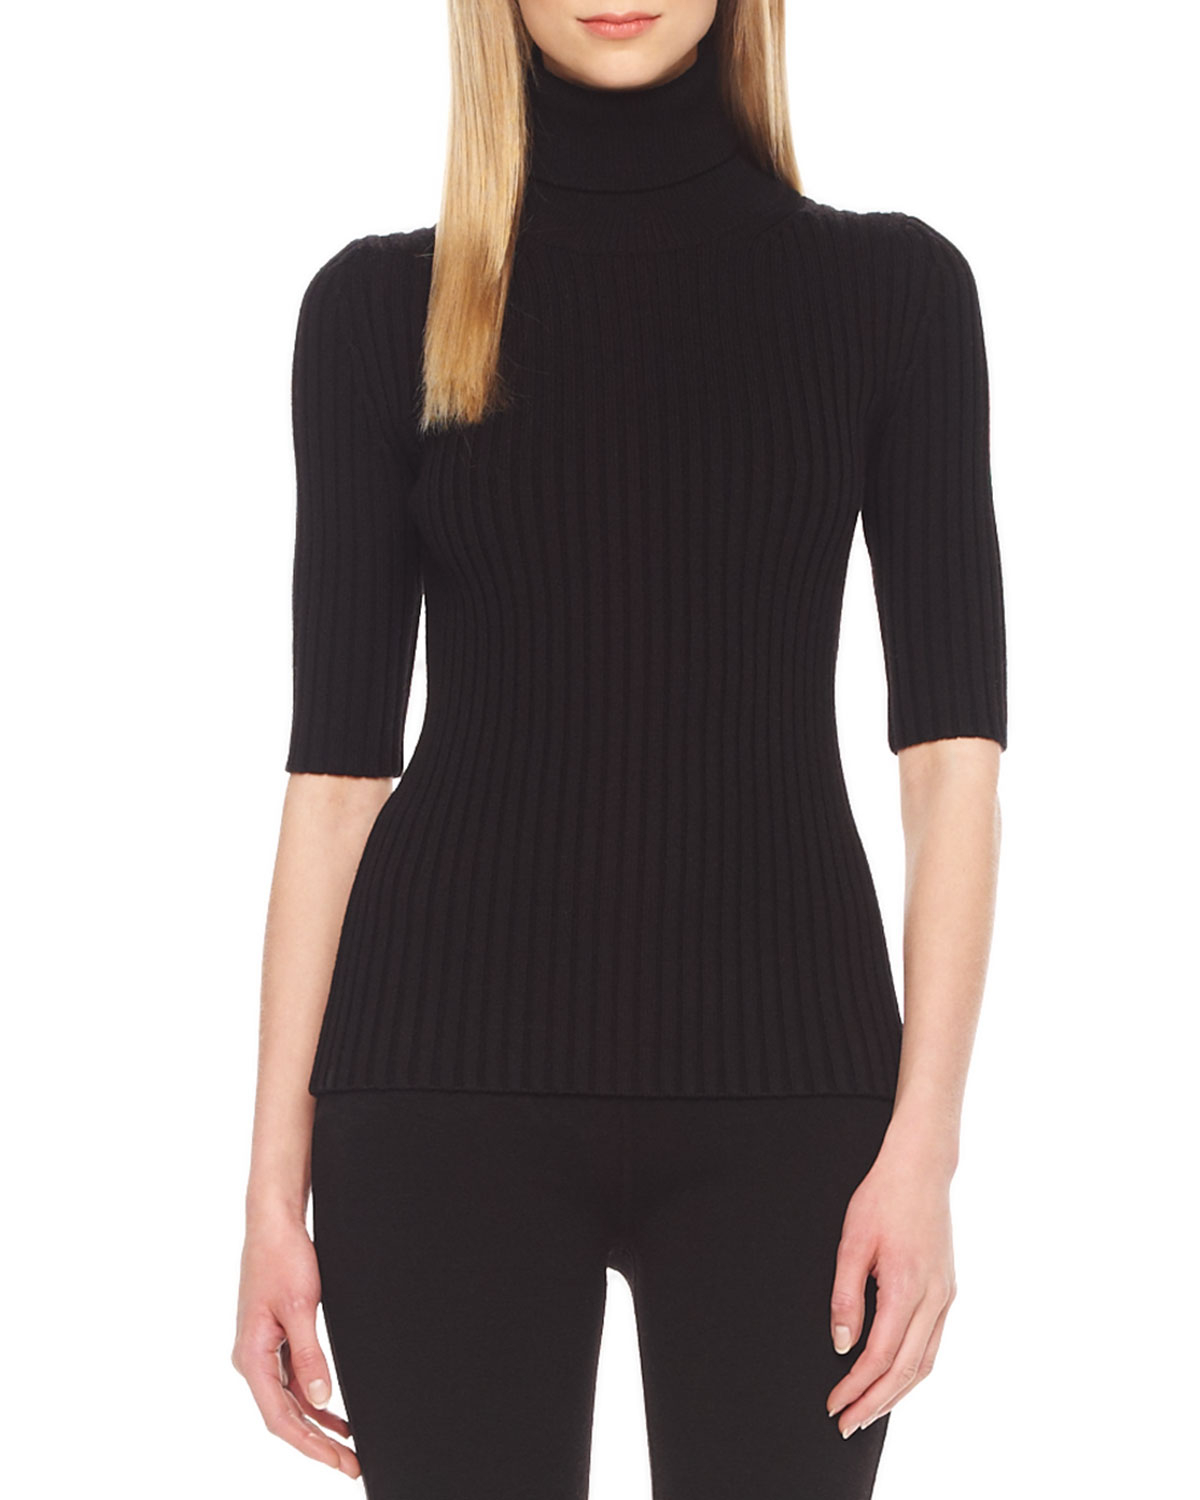 Women S Mock Turtleneck Shirts